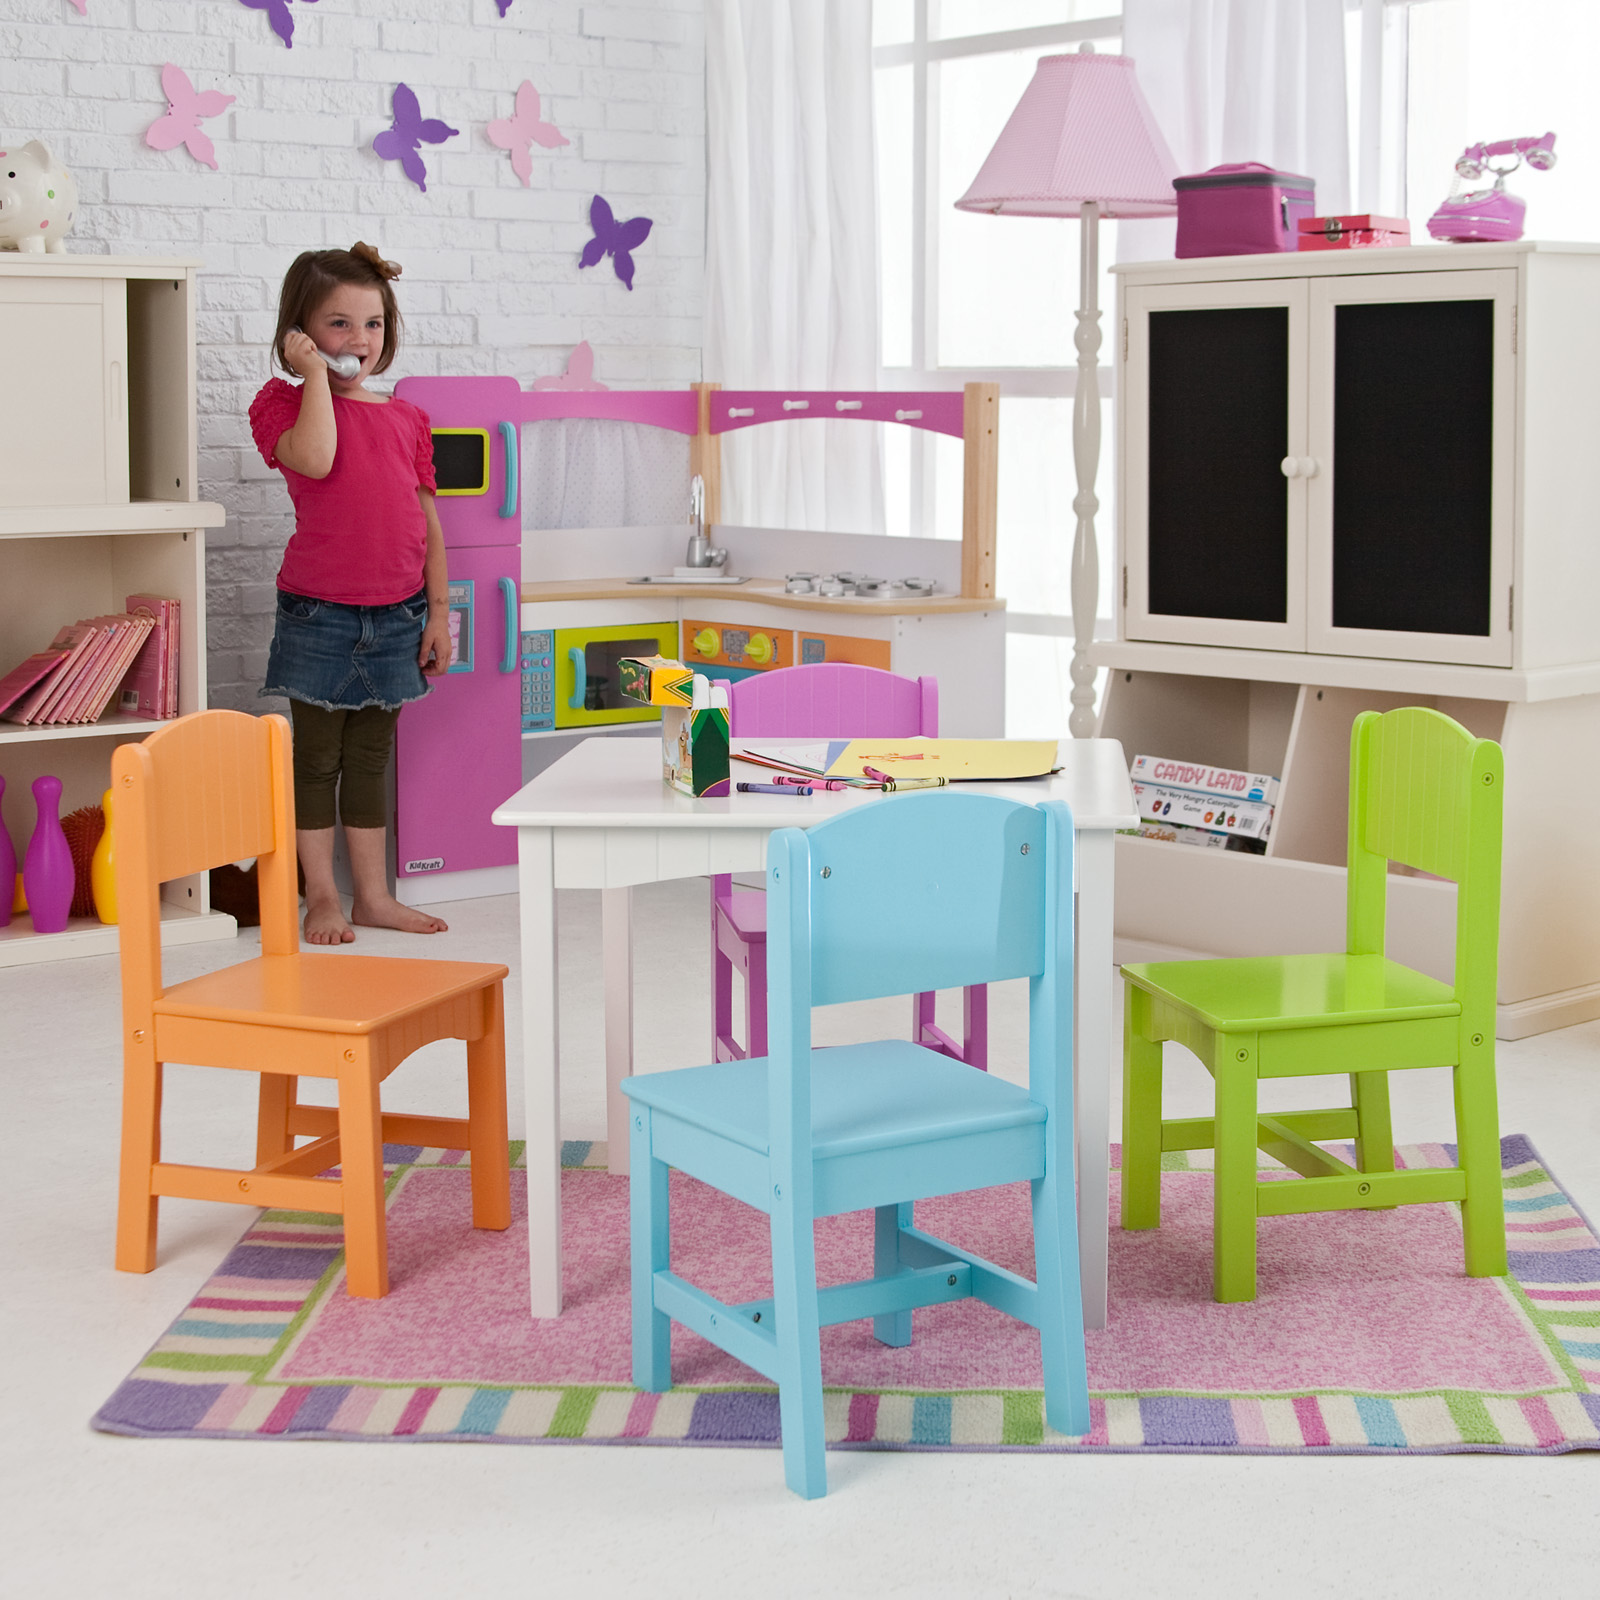 KidKraft Nantucket Primary Table and Chair Set - 26121 | Hayneedle